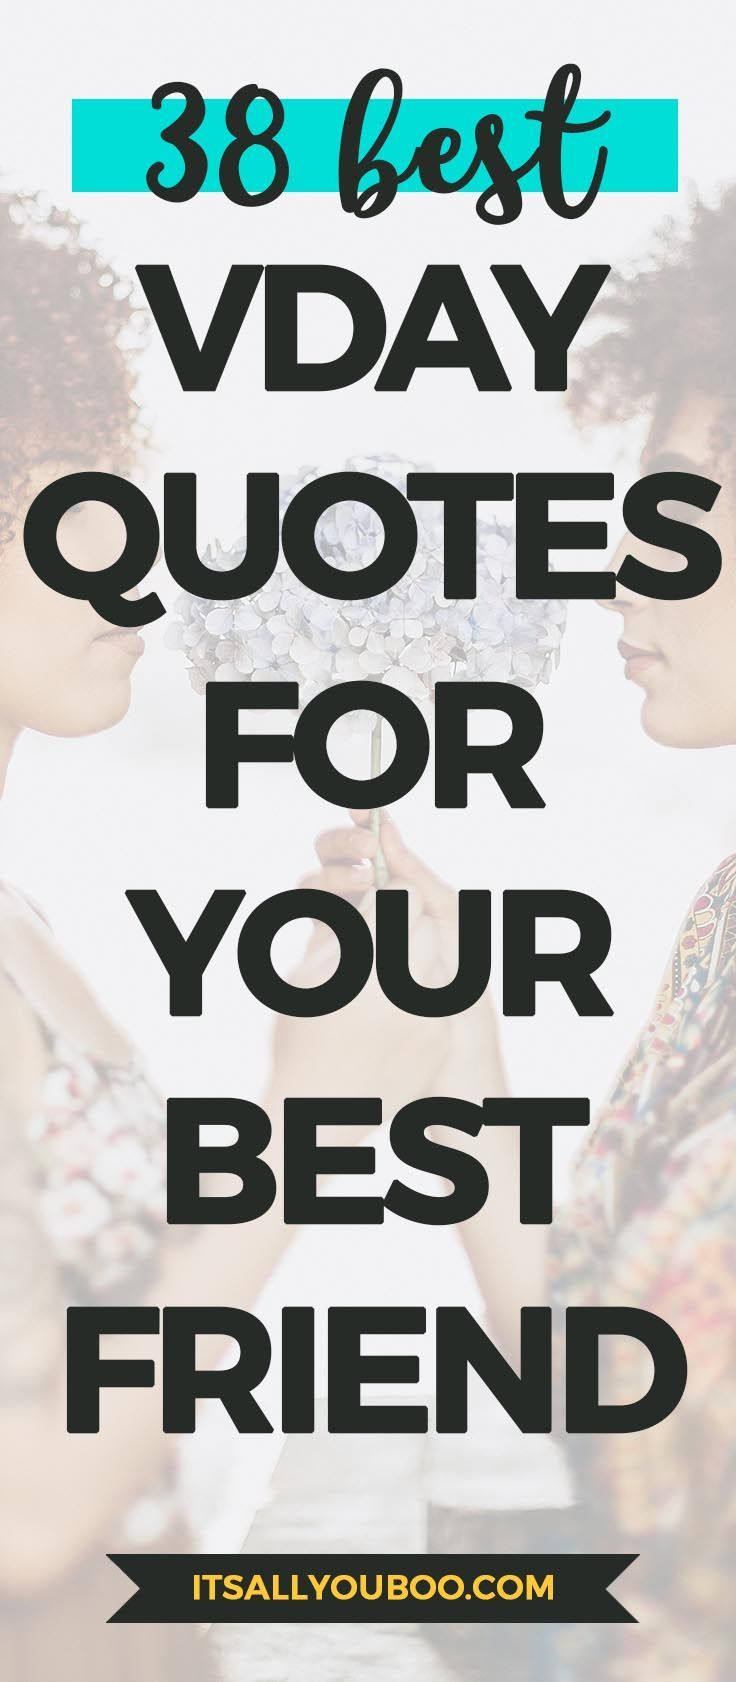 "Looking for unique ways to wish your bestie Happy Valentine's Day? Sometimes ""Will You Be My Valentine"" just doesn't say it funny, sweet or cute enough. Click here for 38 of the best Valentine's Day Quotes for Friends. #valentines #vday #valentinesday #galentinesday #galentine #bestfriendgoals #bestiegoals #besties #bff #bestfriends #bffgoals #quotes #quoteoftheday #quotesdaily #positivequotes #qotd #lifequotes #quotestoinspire"